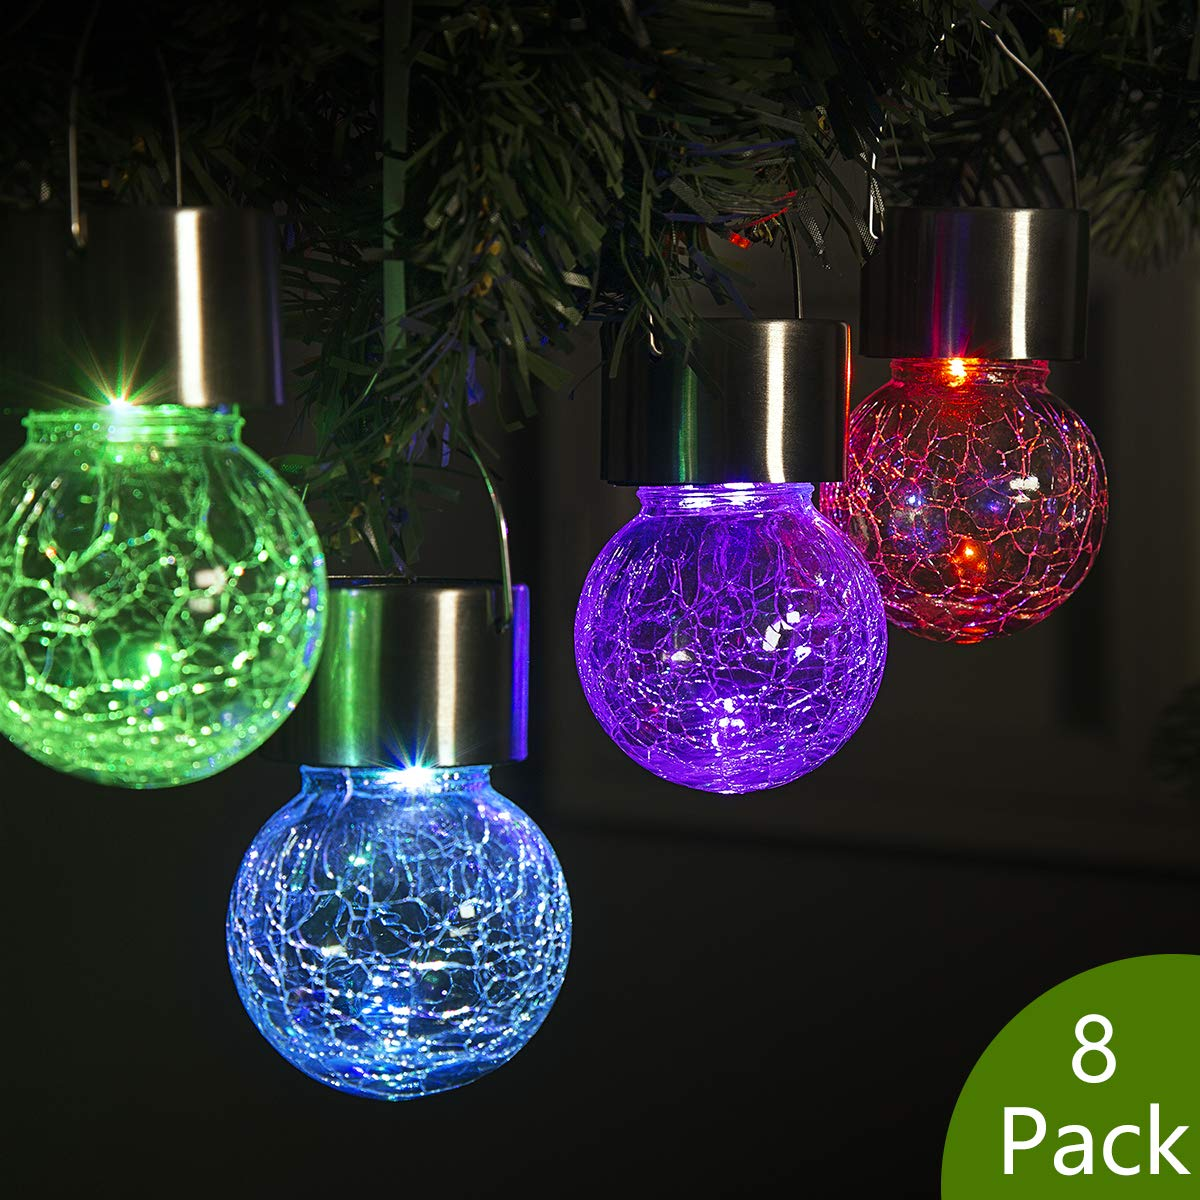 GIGALUMI 8 Pack Hanging Solar Lights Multi-Color Changing Cracked Glass Hanging Ball Lights Waterproof Outdoor Solar Lanterns for Garden, Yard, Patio, Lawn by GIGALUMI